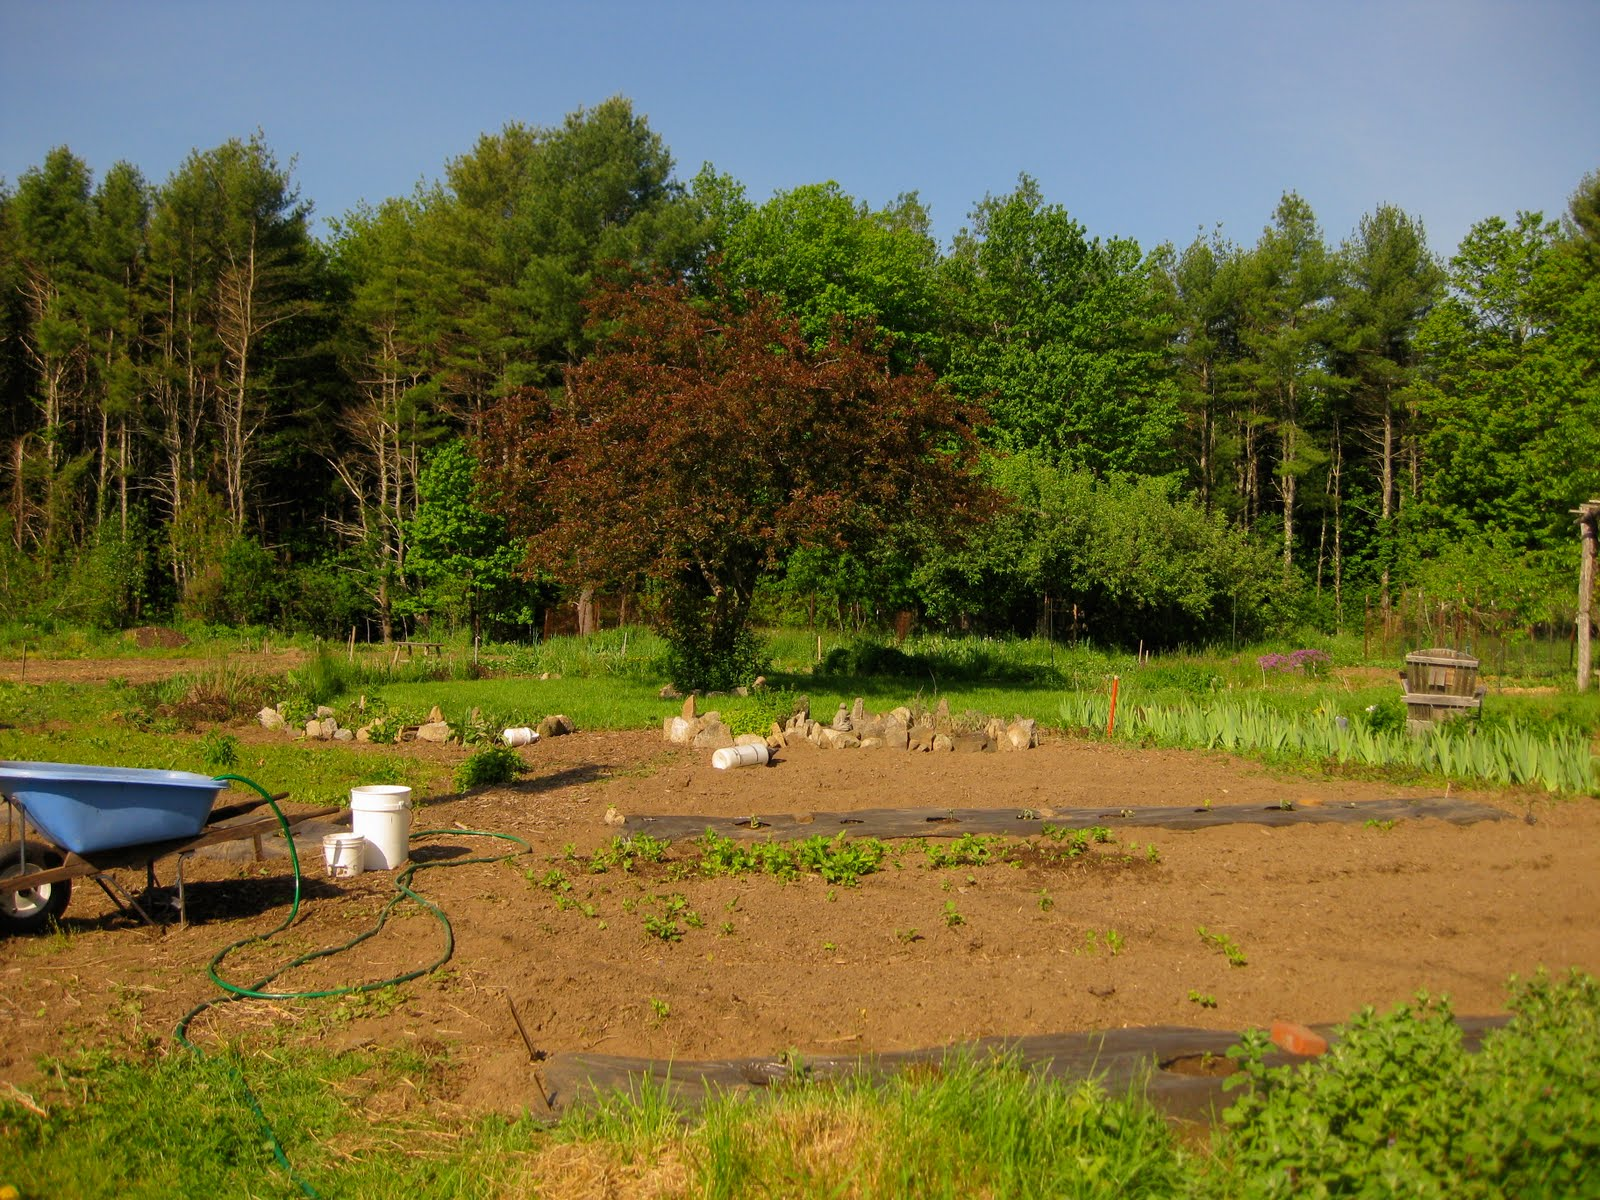 This is the main planting area for our vegetables. That's the area we're clearing out, and hopefully it'll look pretty different after this weekend!